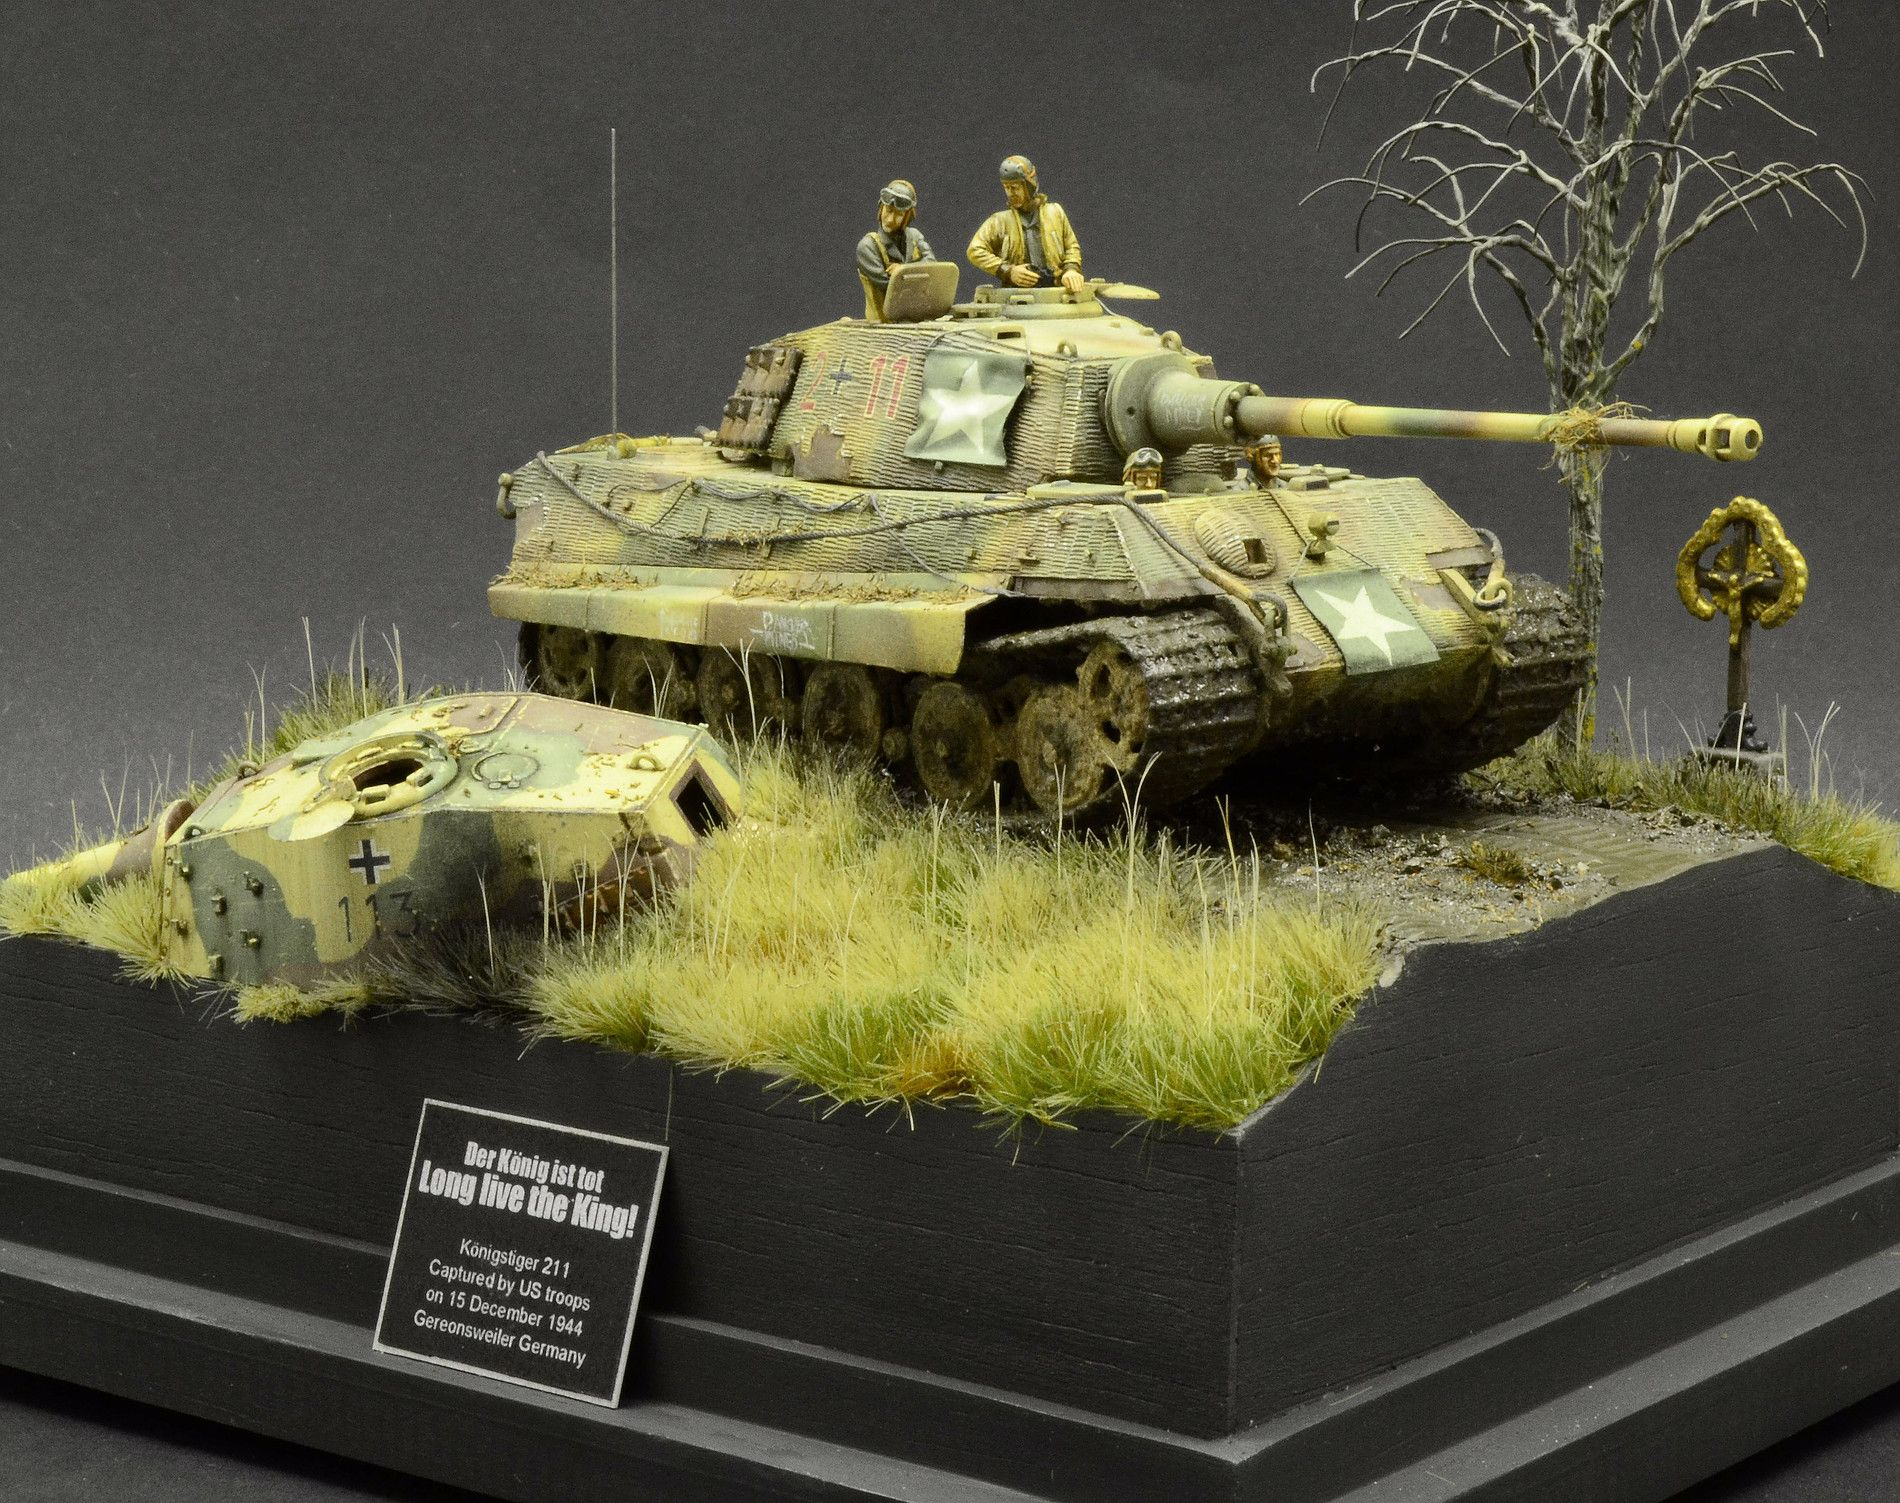 master-model-maker | Dioramas | Military diorama, Model